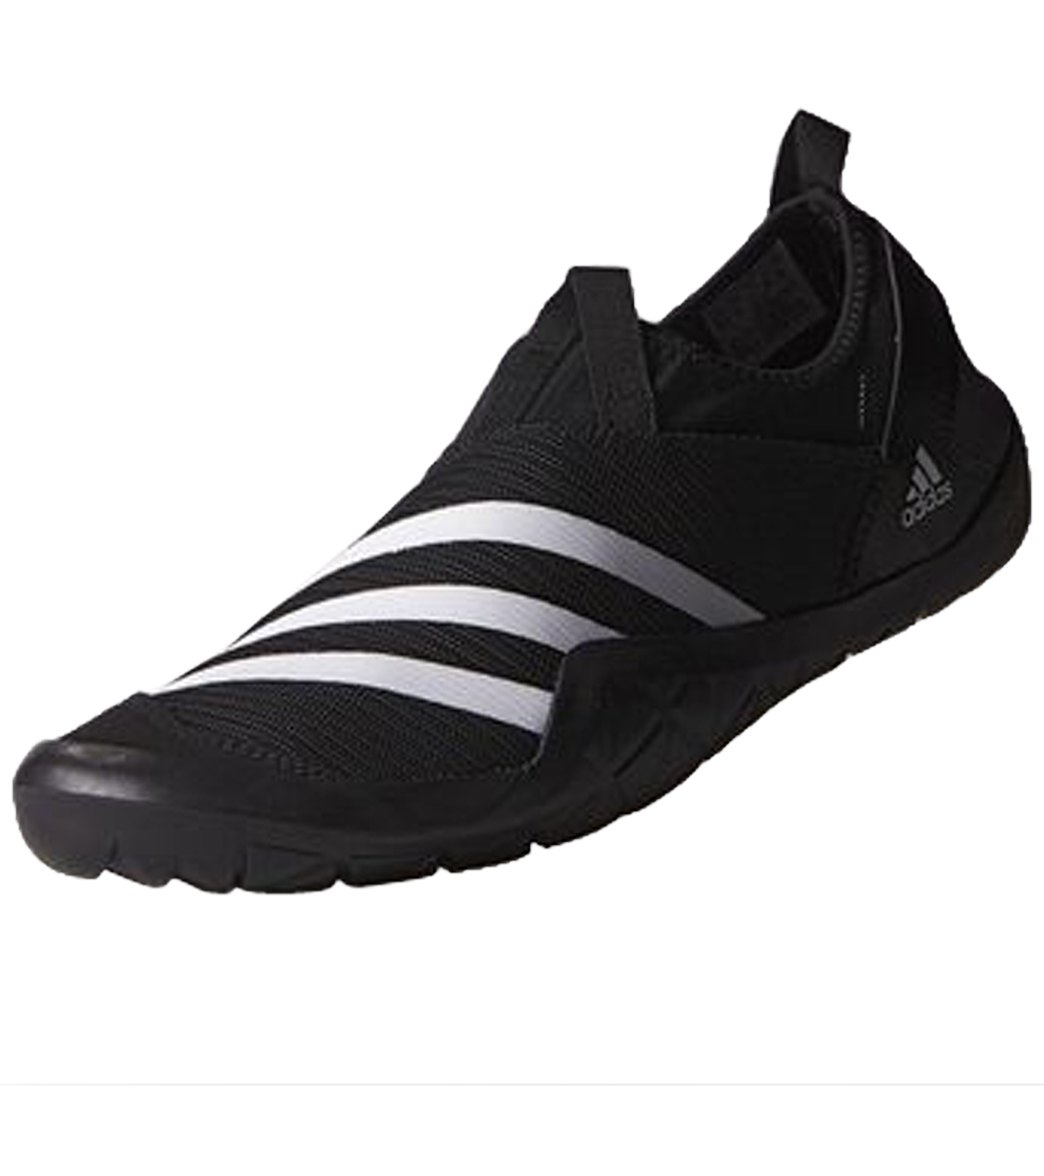 adidas water shoes men